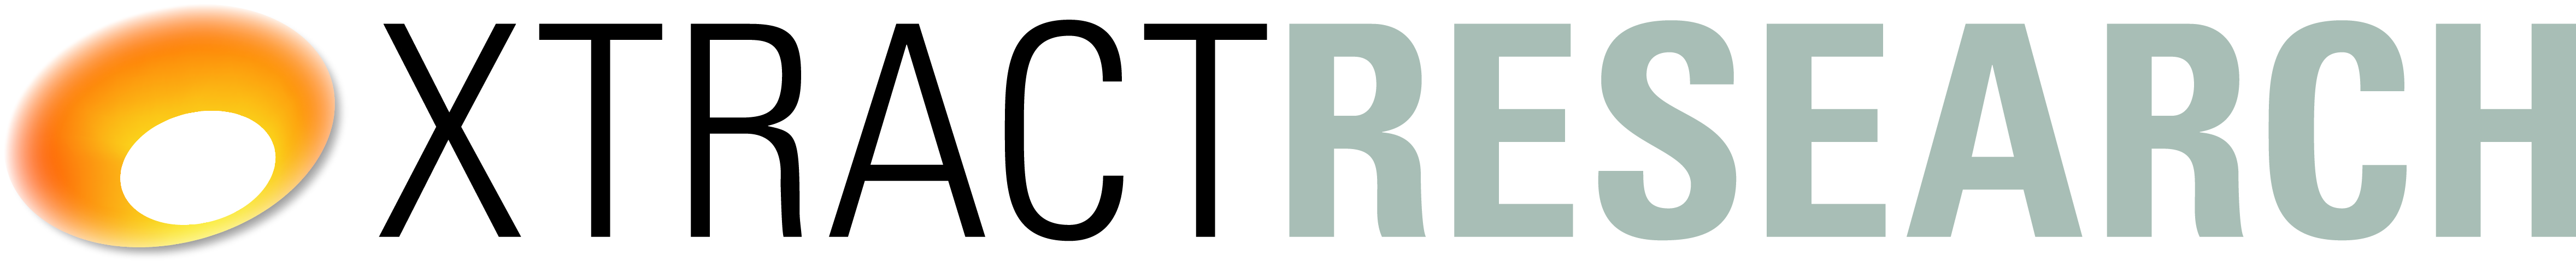 Xtract logo